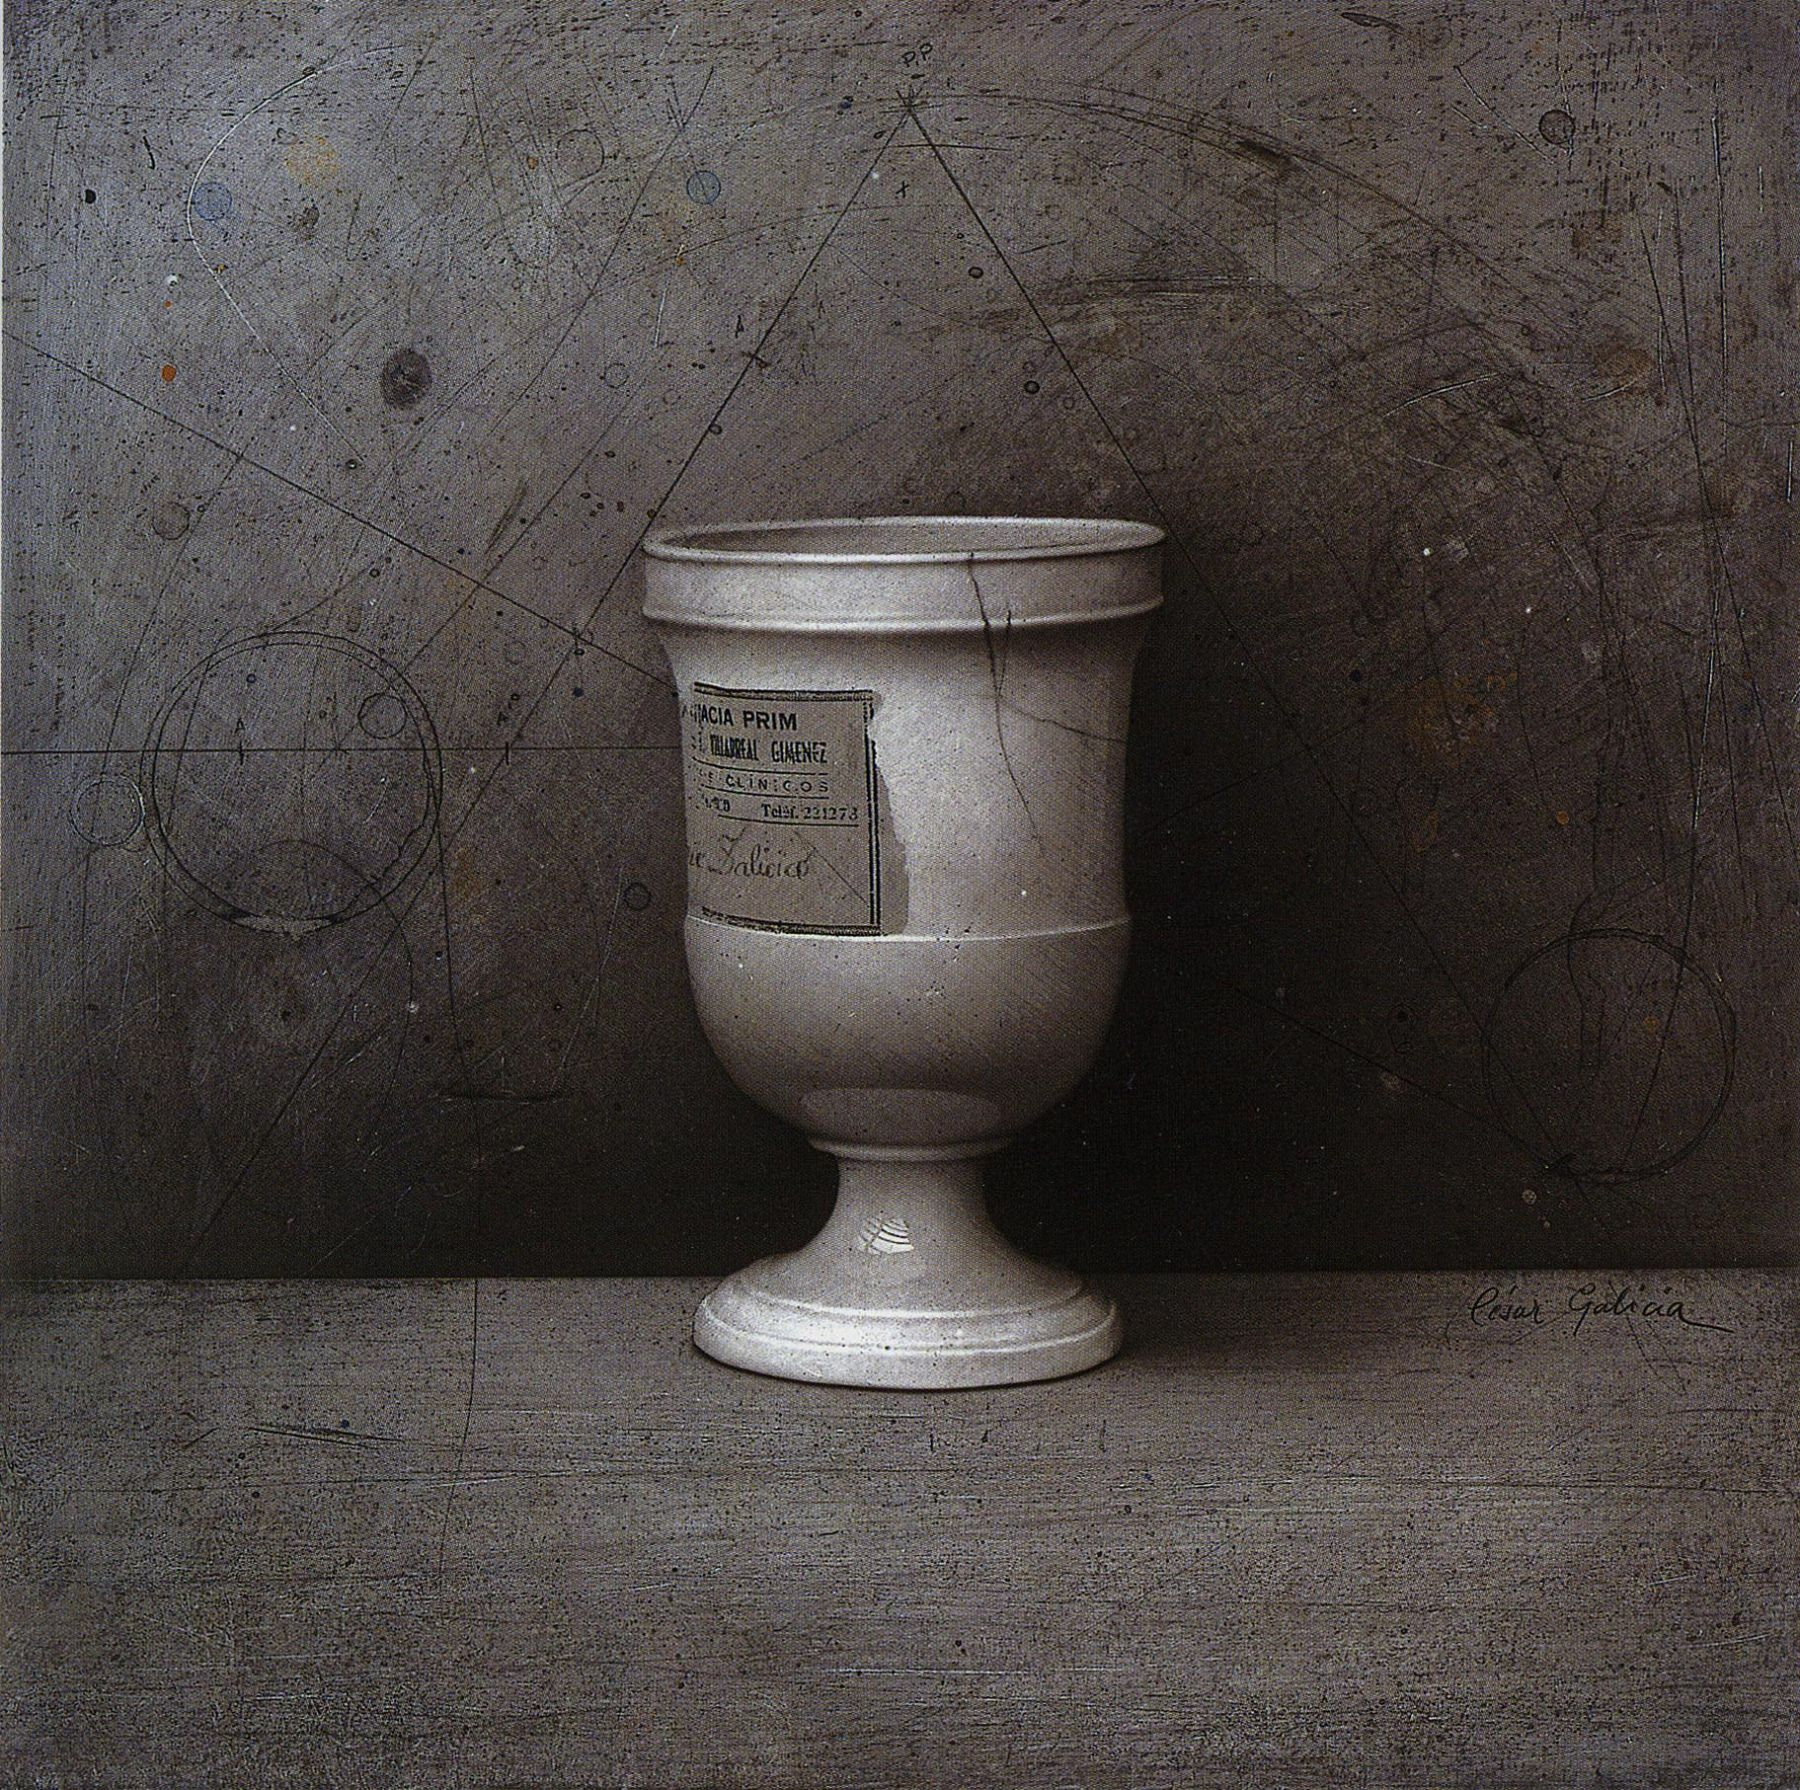 Cesar Galicia, La Copa de Ana (Ana's Goblet), 1989, mixed media on paper mounted on board, 15 1/2 x 15 1/2 inches